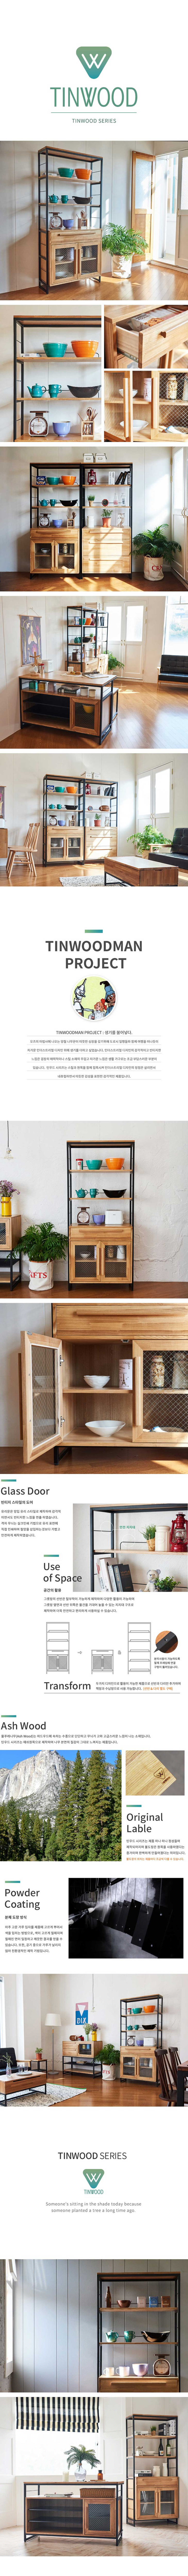 Tinwood_Scandi_Industrial_Glass_Door_Shelf_Cabinet_Online-Furniture_Singapore_Product_Information_by_born_in_colour